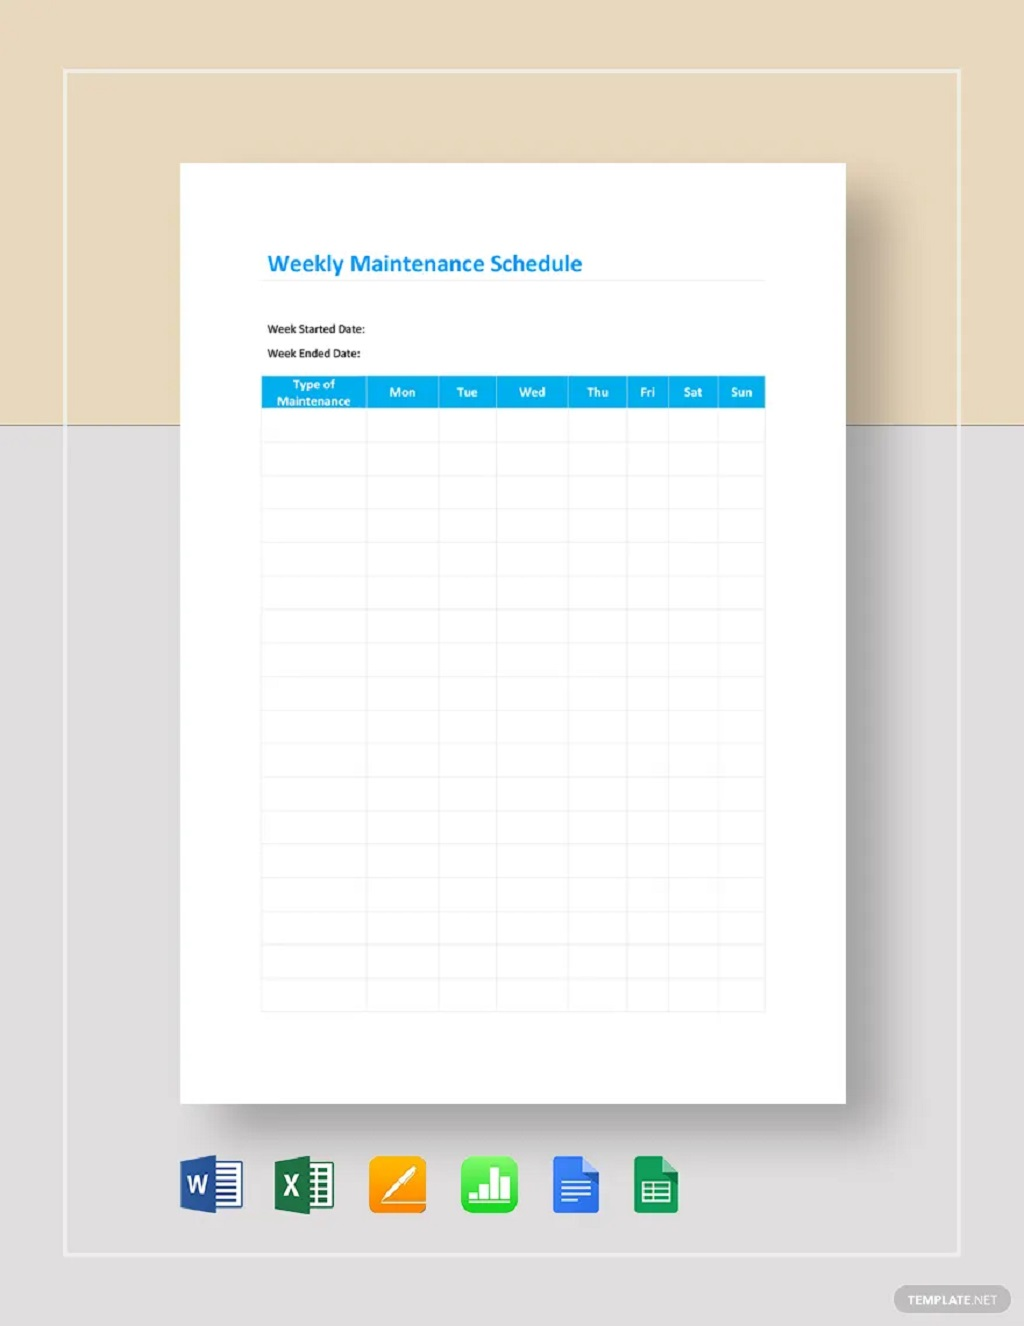 Weekly Maintenance Schedule Sample Template Planner Printable Google Sheets Searches Related To Excel  Samples Large